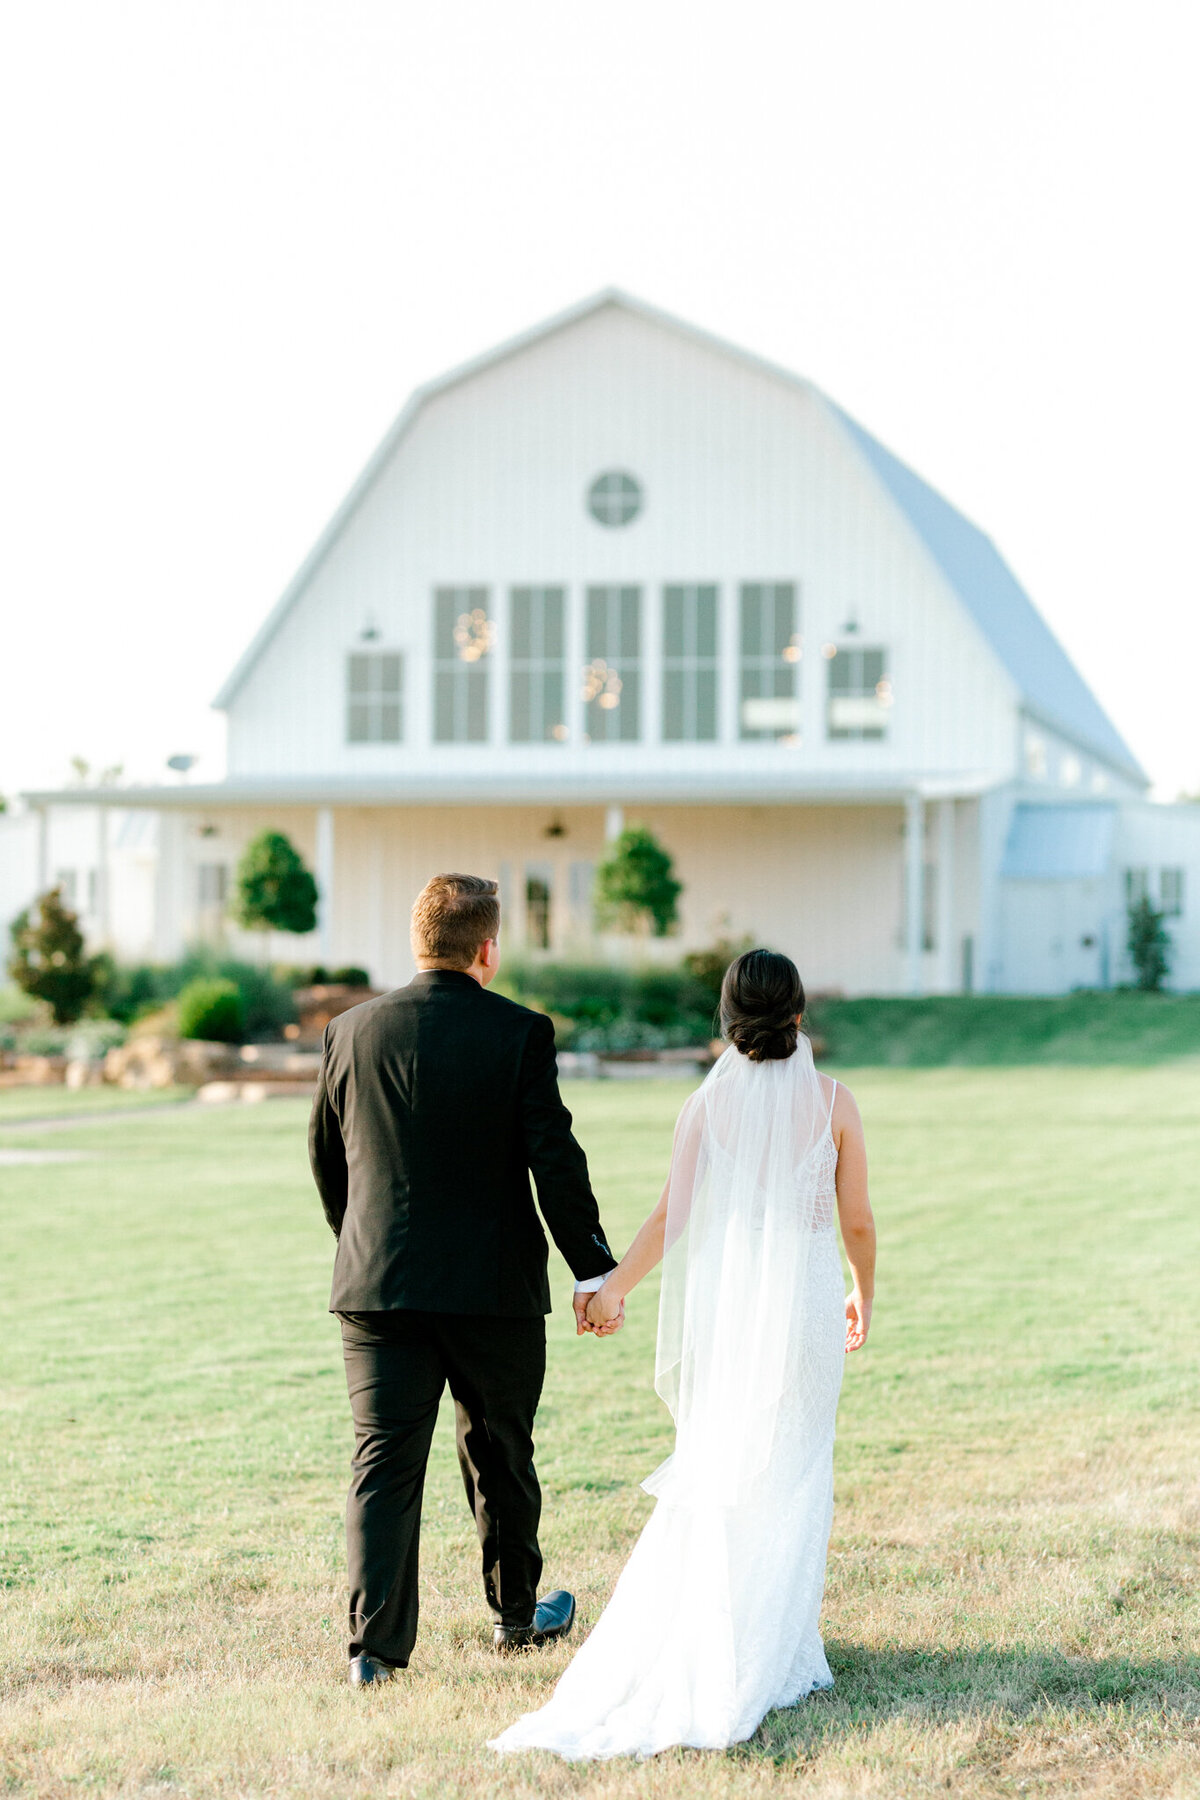 Anna & Billy's Wedding at The Nest at Ruth Farms | Dallas Wedding Photographer | Sami Kathryn Photography-172